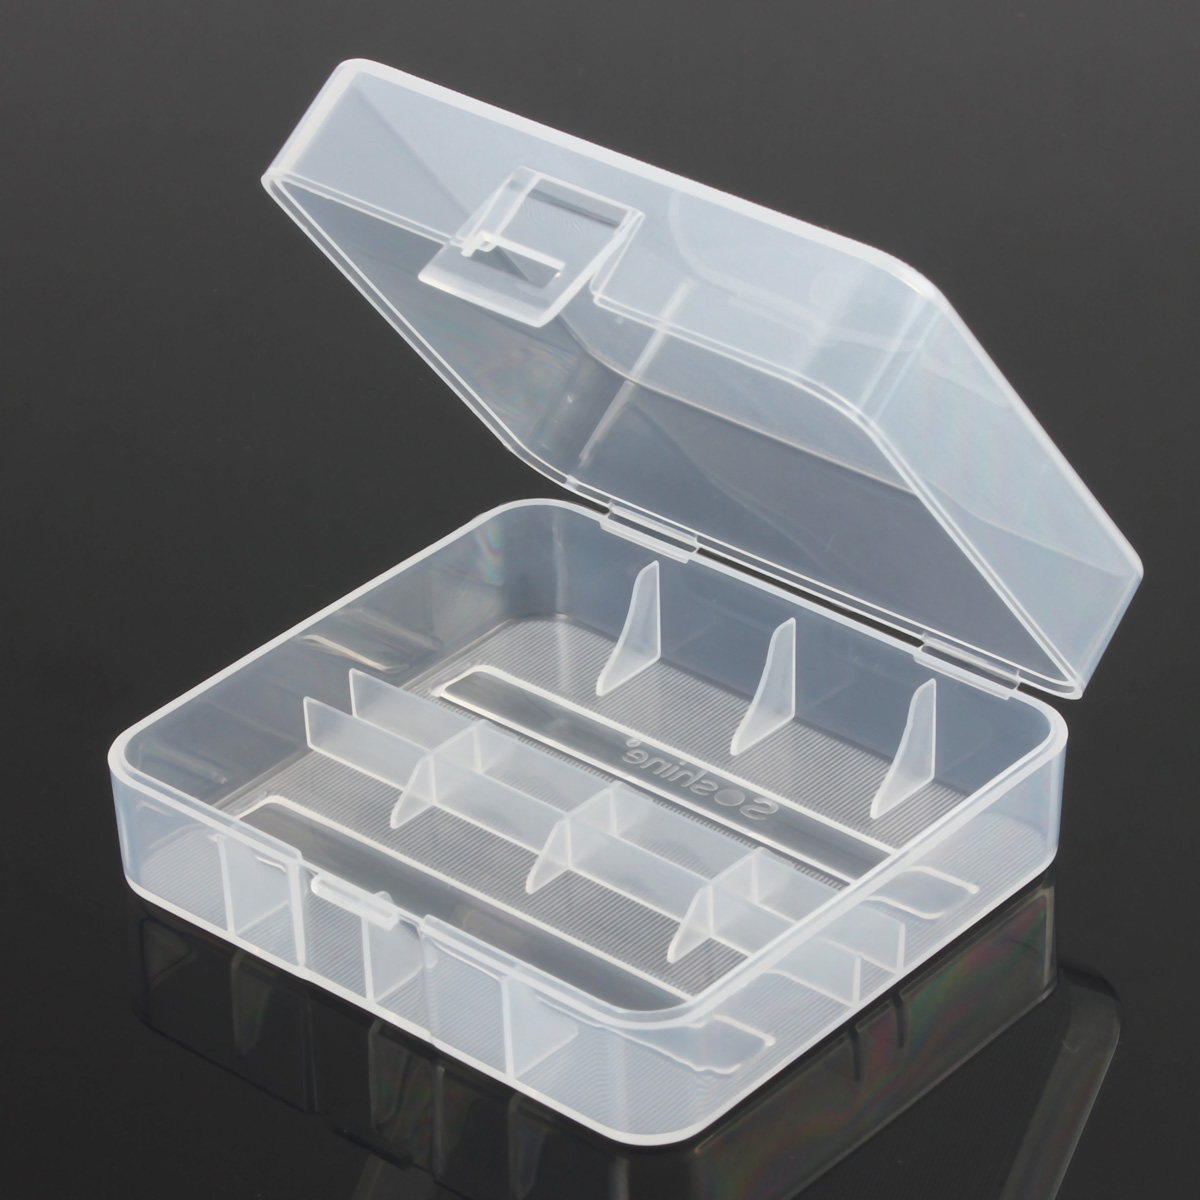 Plastic Clear Battery Case Holder Cover Storage Box Organizer DIY for 2Pcs 26650 Batteries